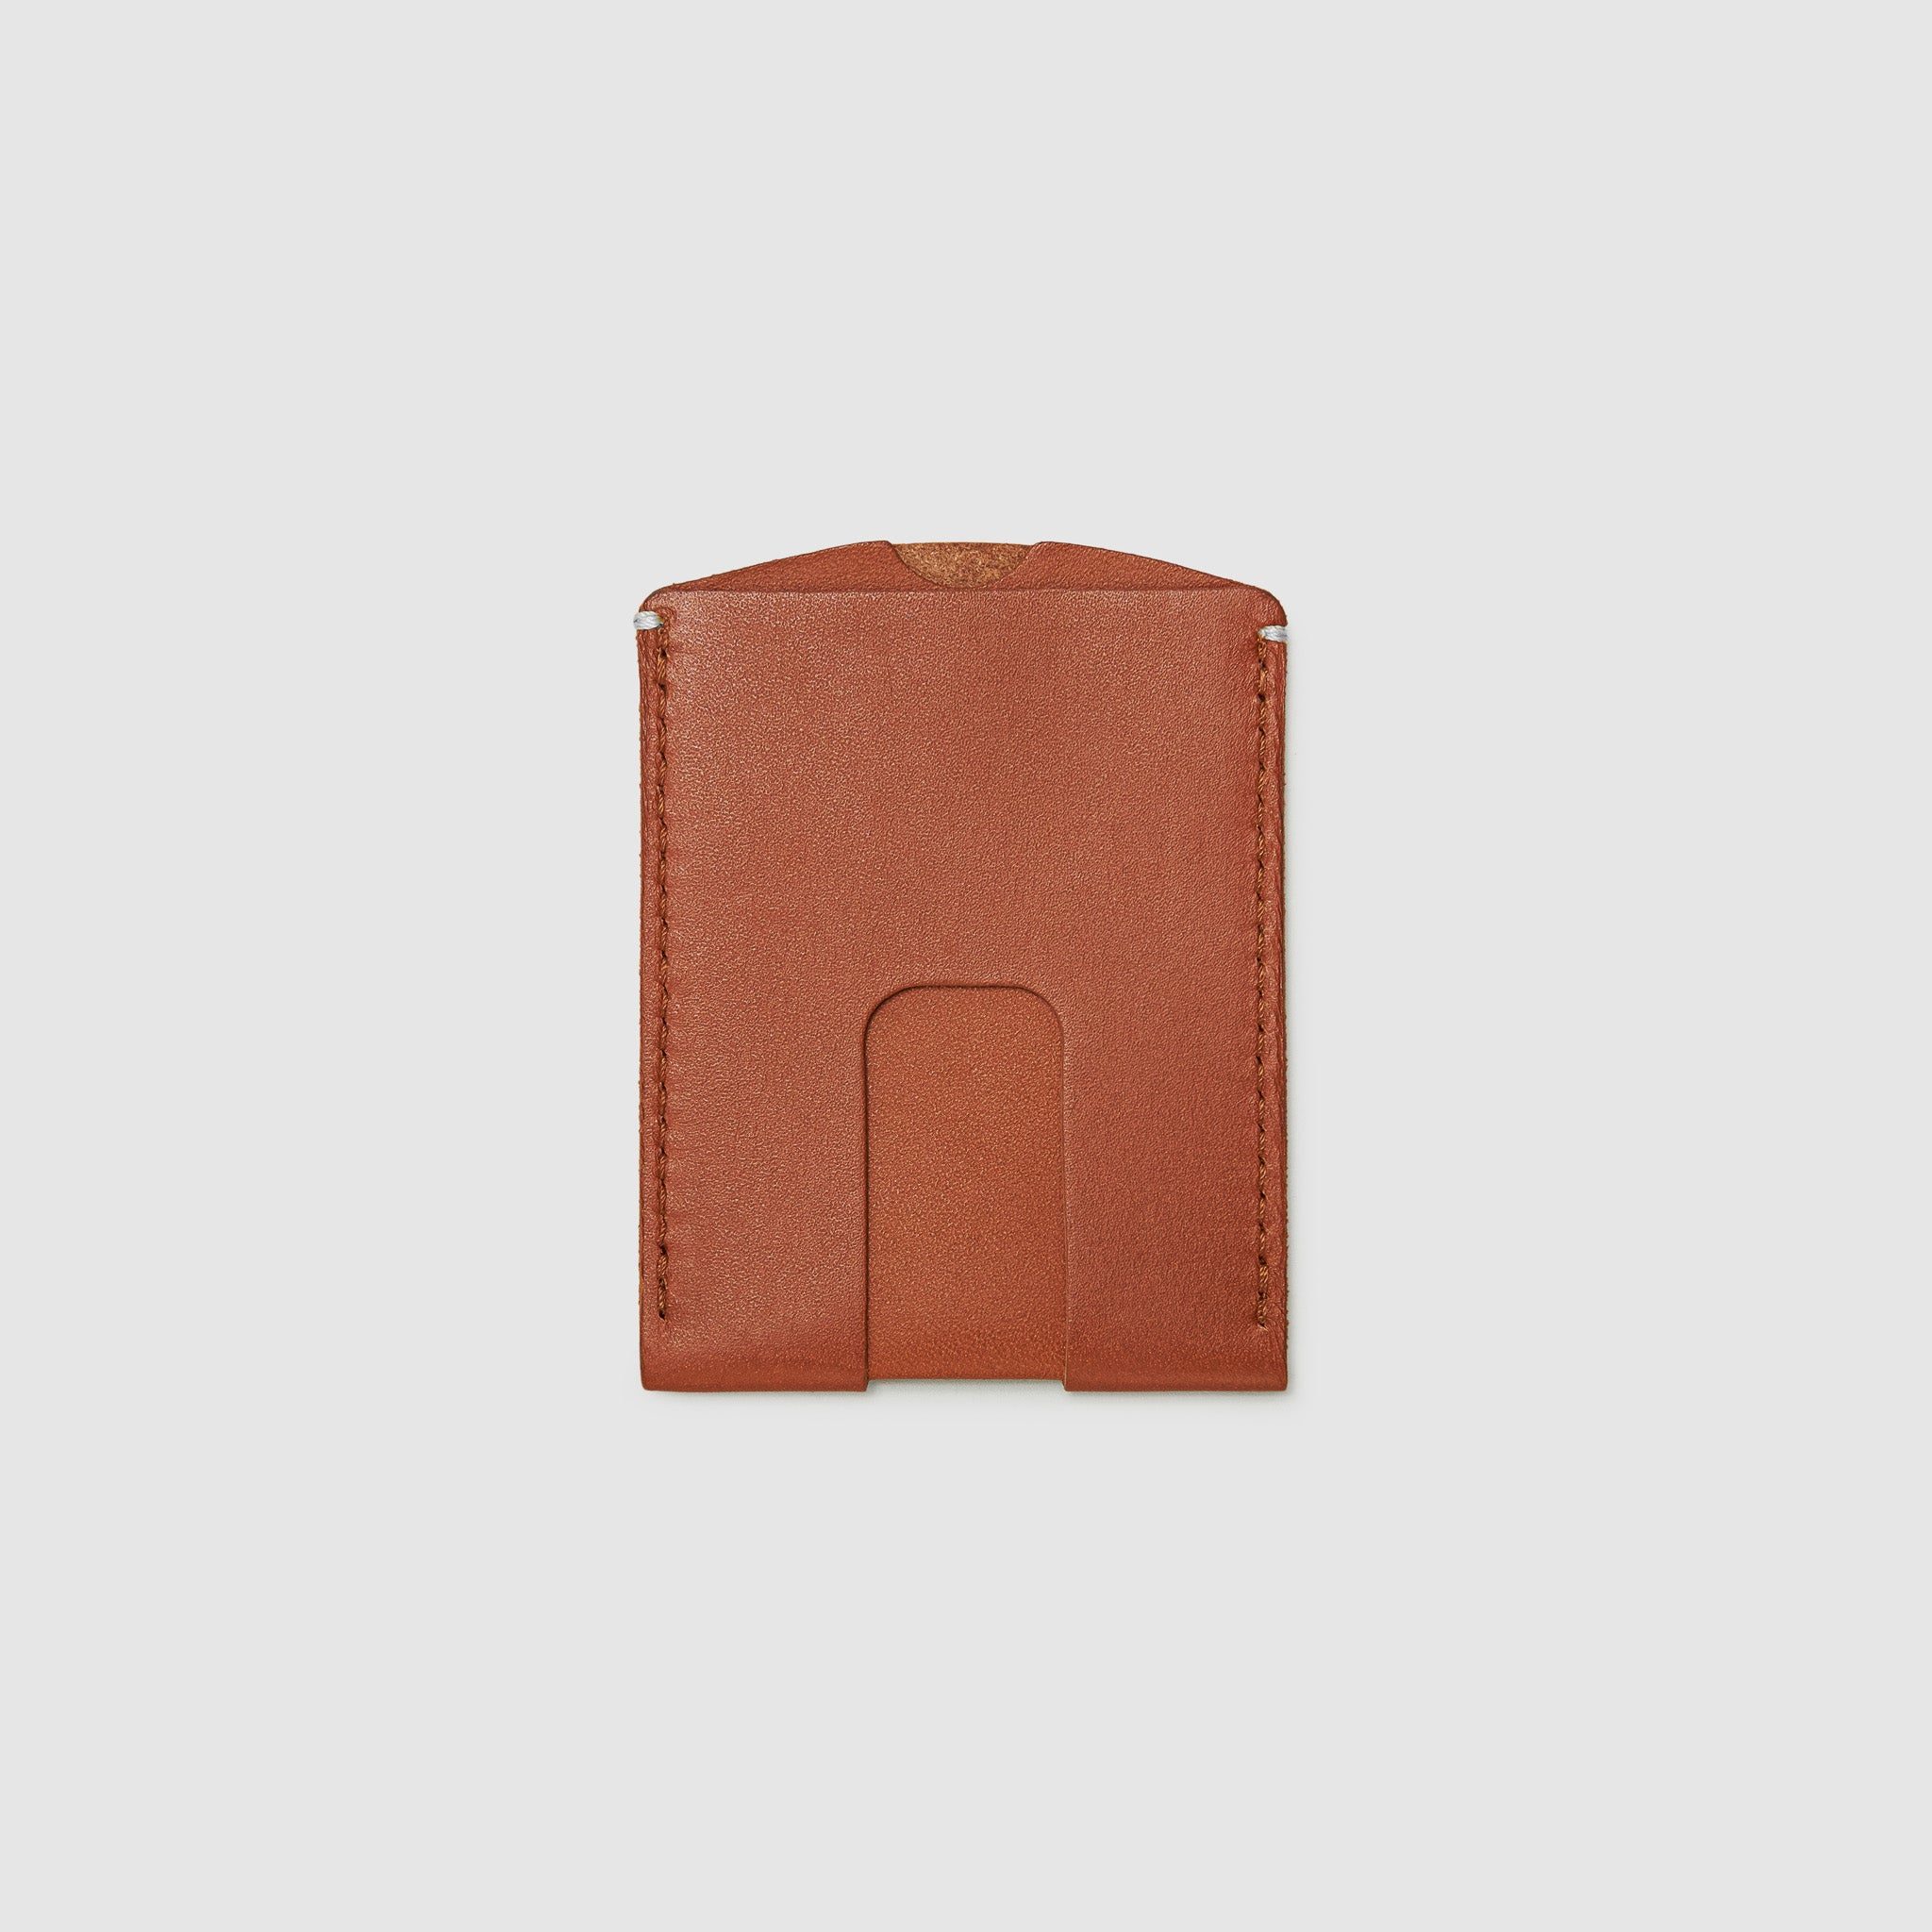 Anson Calder Card Holder Wallet french calfskin leather _cognac